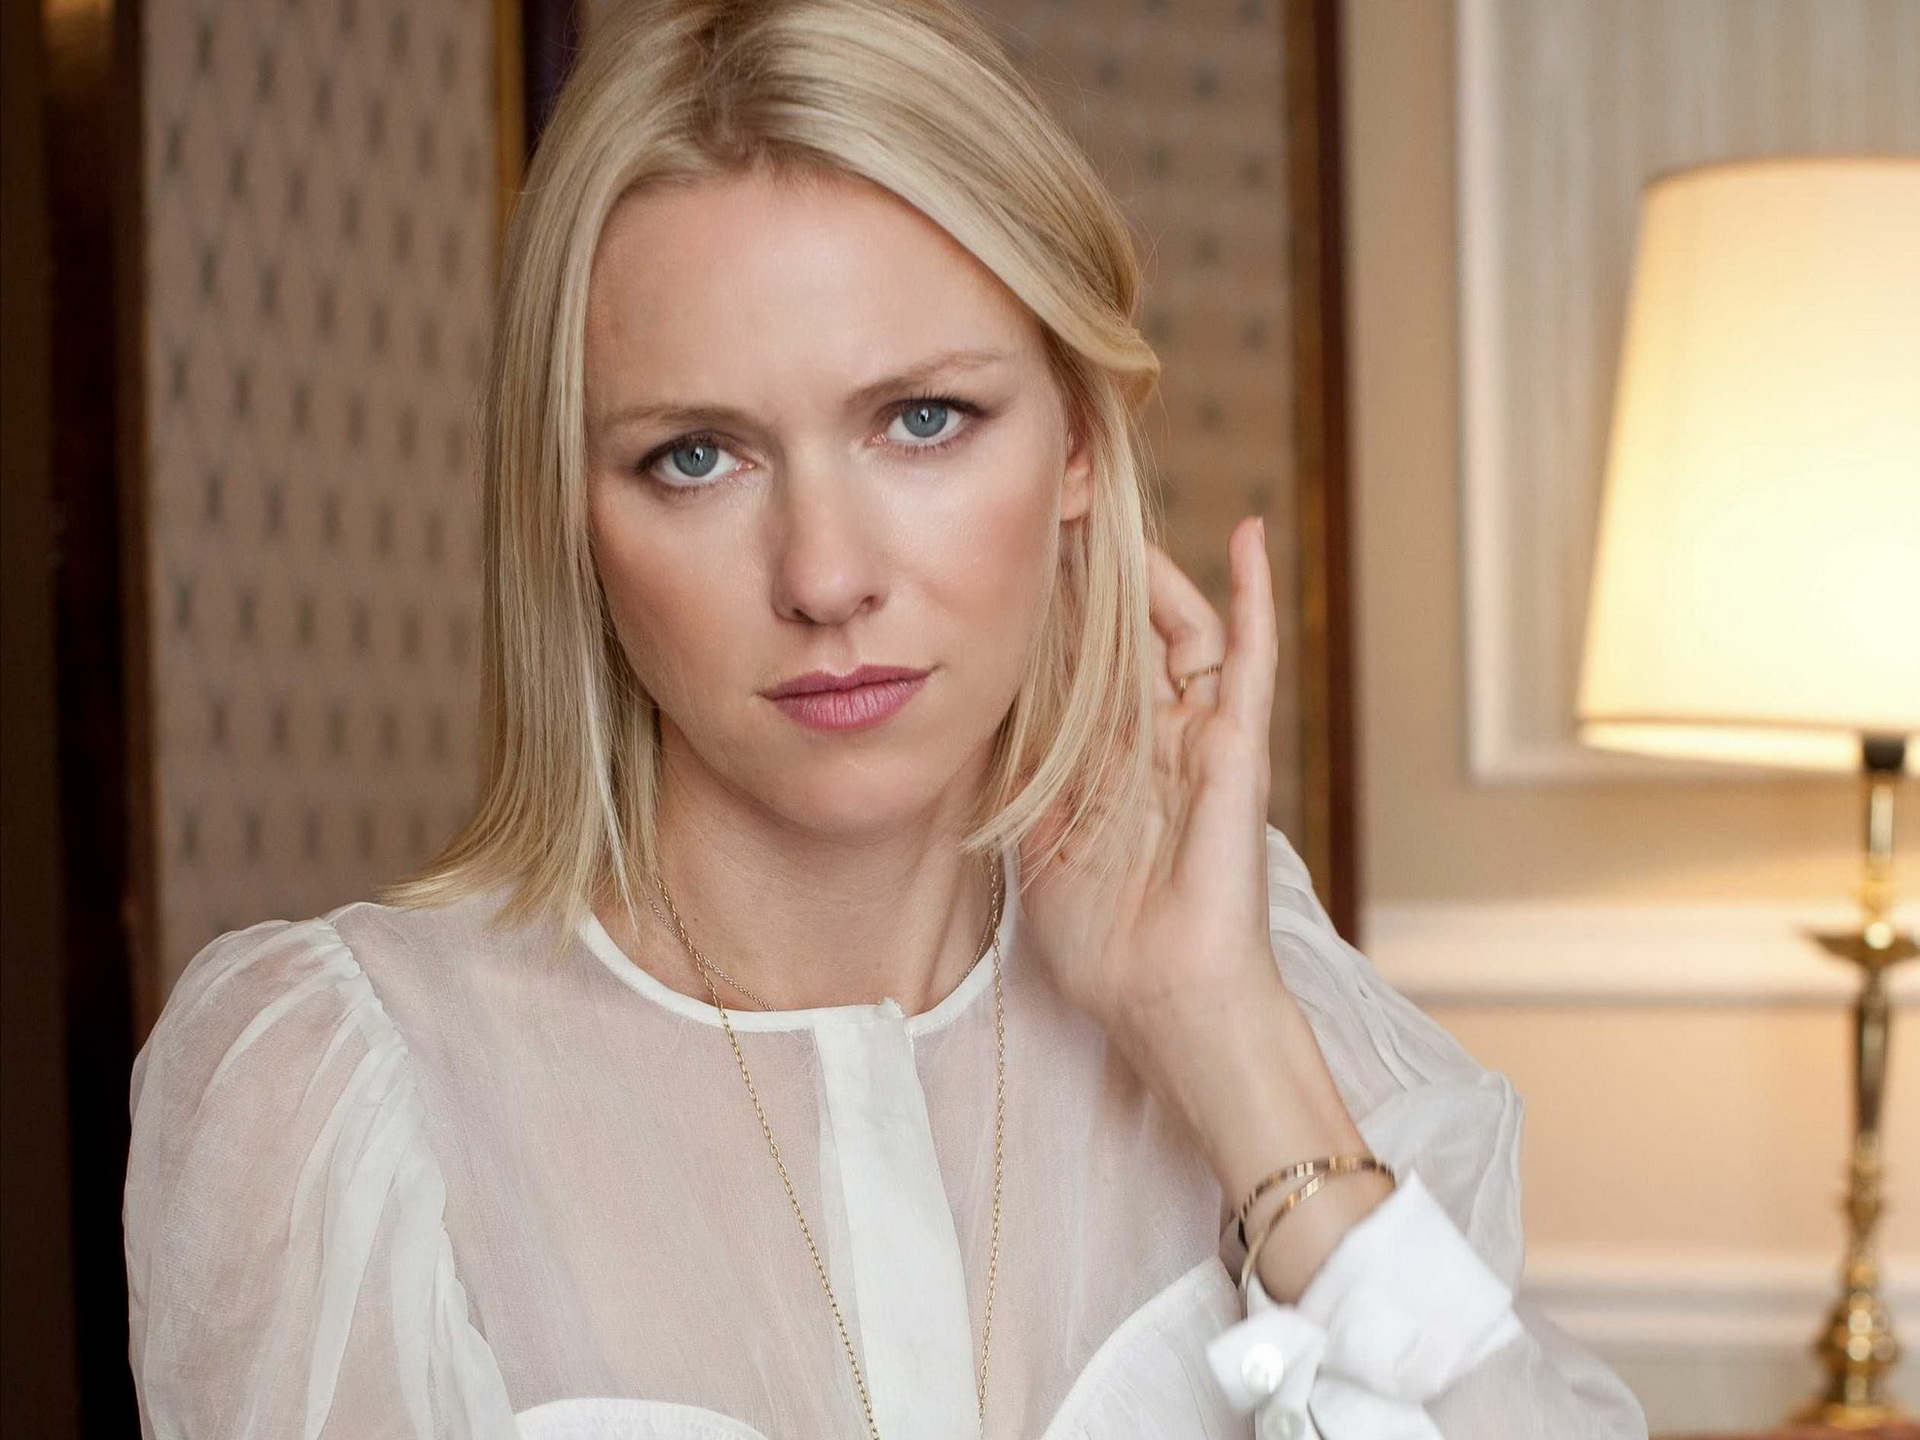 Naomi Watts Wallpapers Hd Collection For Download 1920x1440